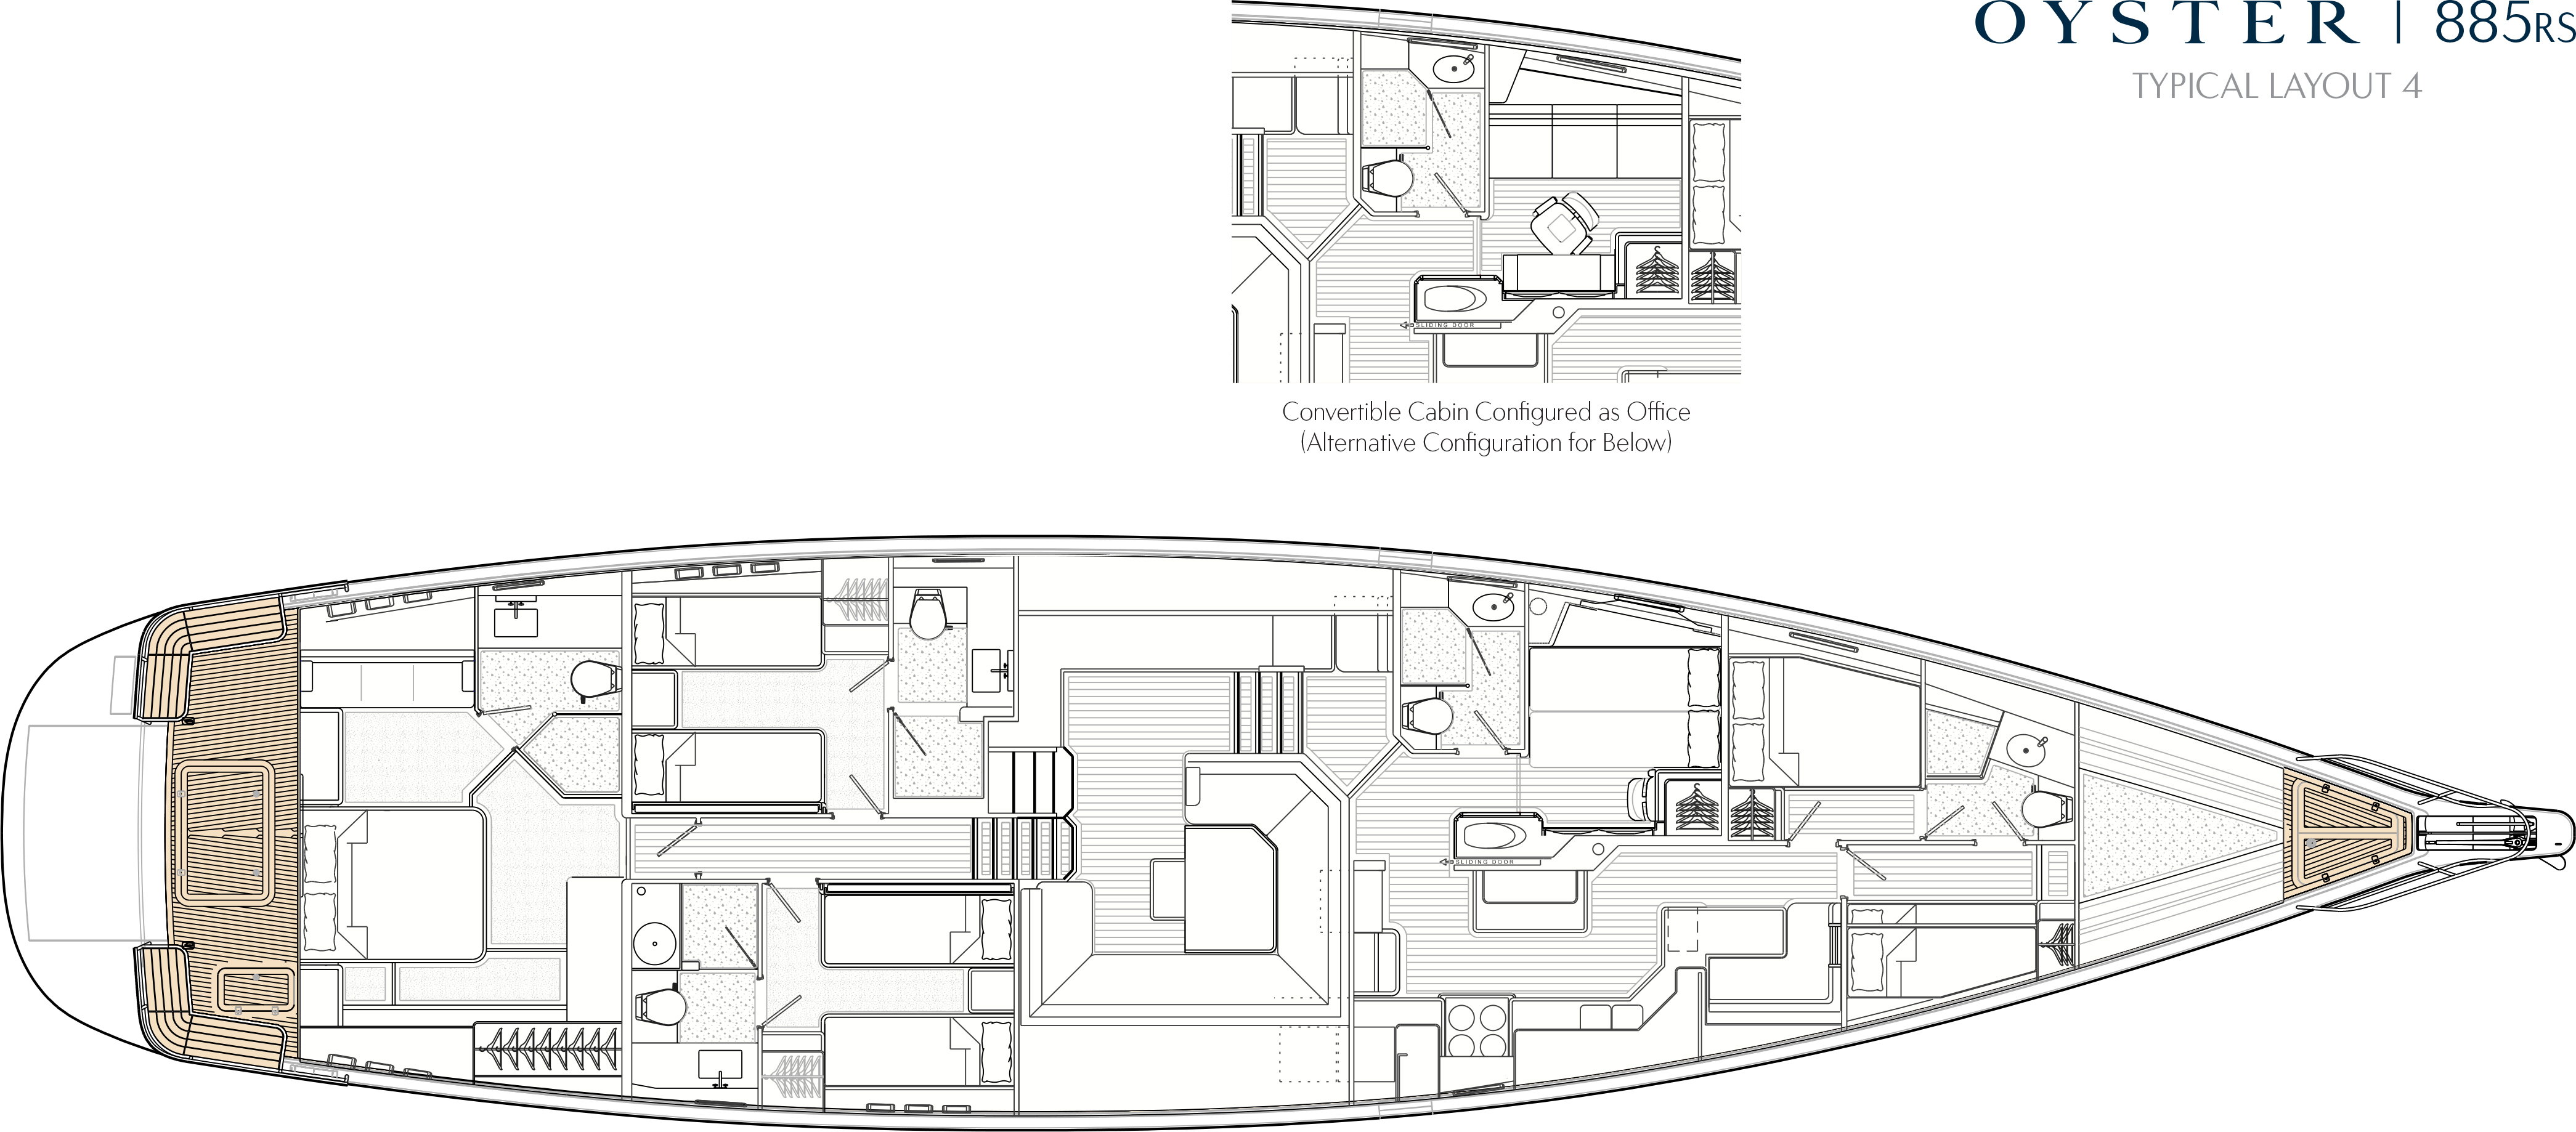 Oyster Marine 885 - oysteryachts-yachts-885rs_typical_layout_4.jpg